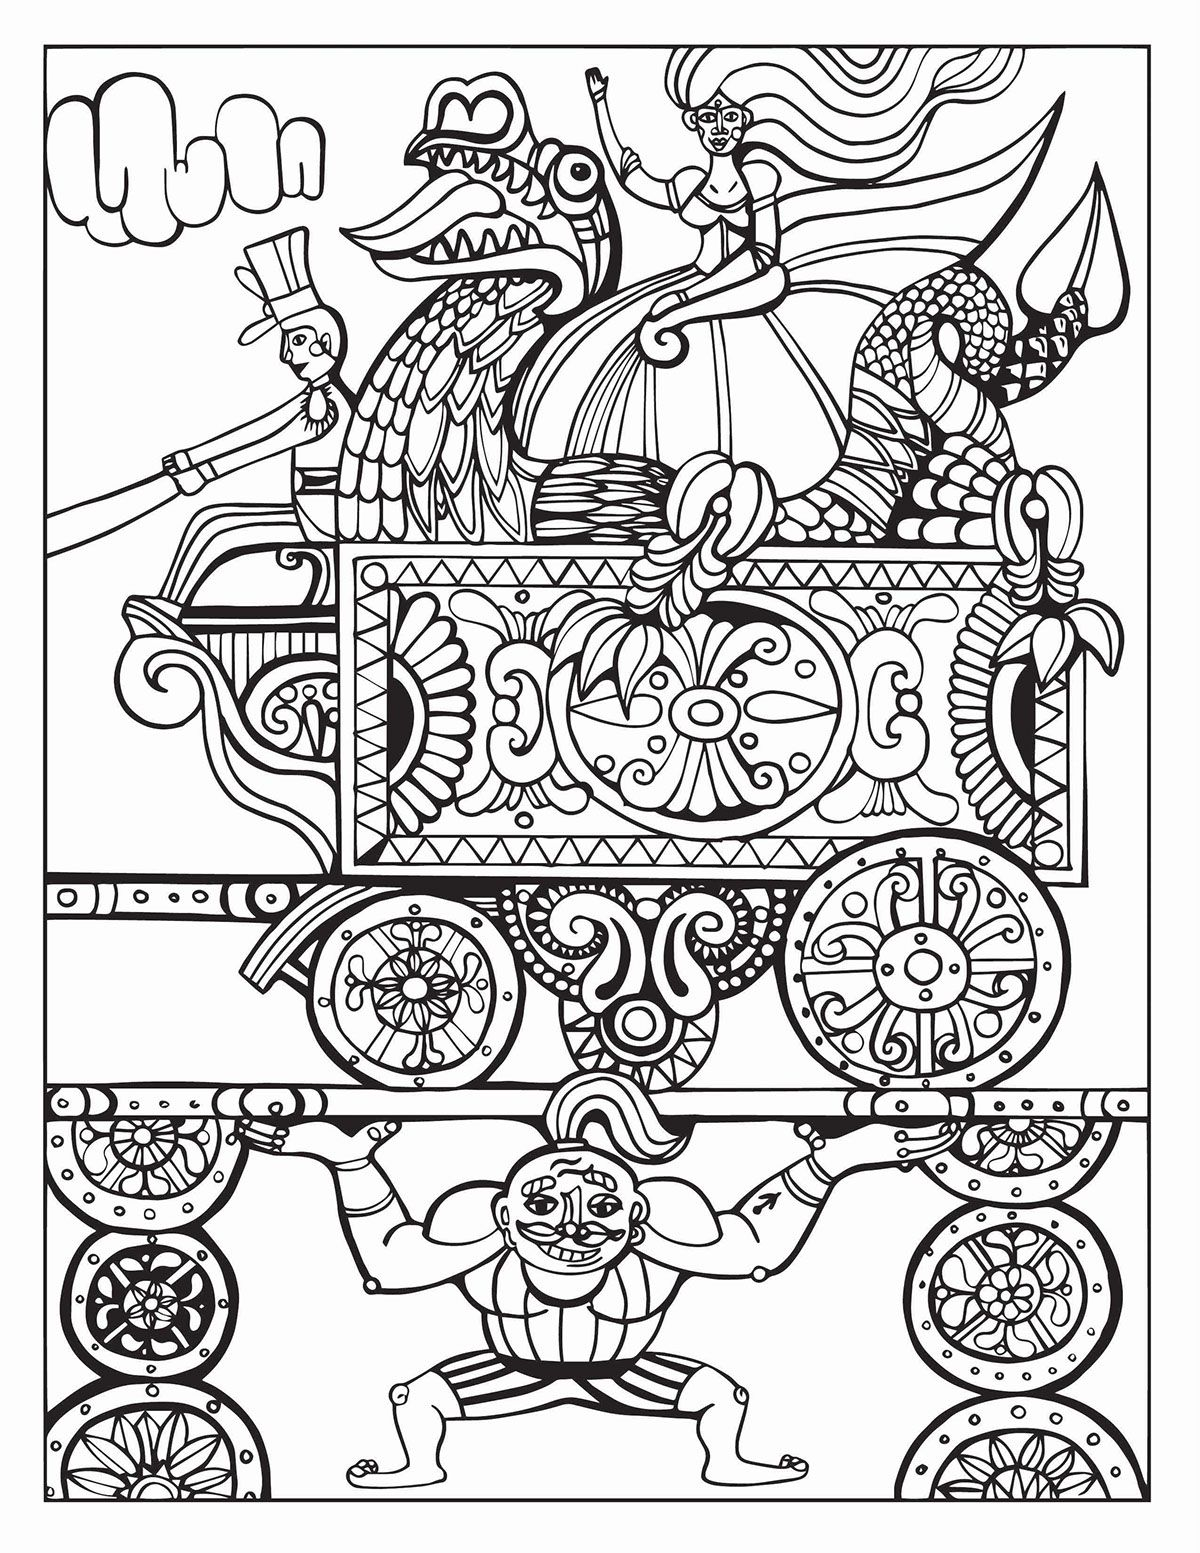 A Day At The Circus Coloring Page On Behance Coloring Pages Coloring Books Unique Coloring Pages